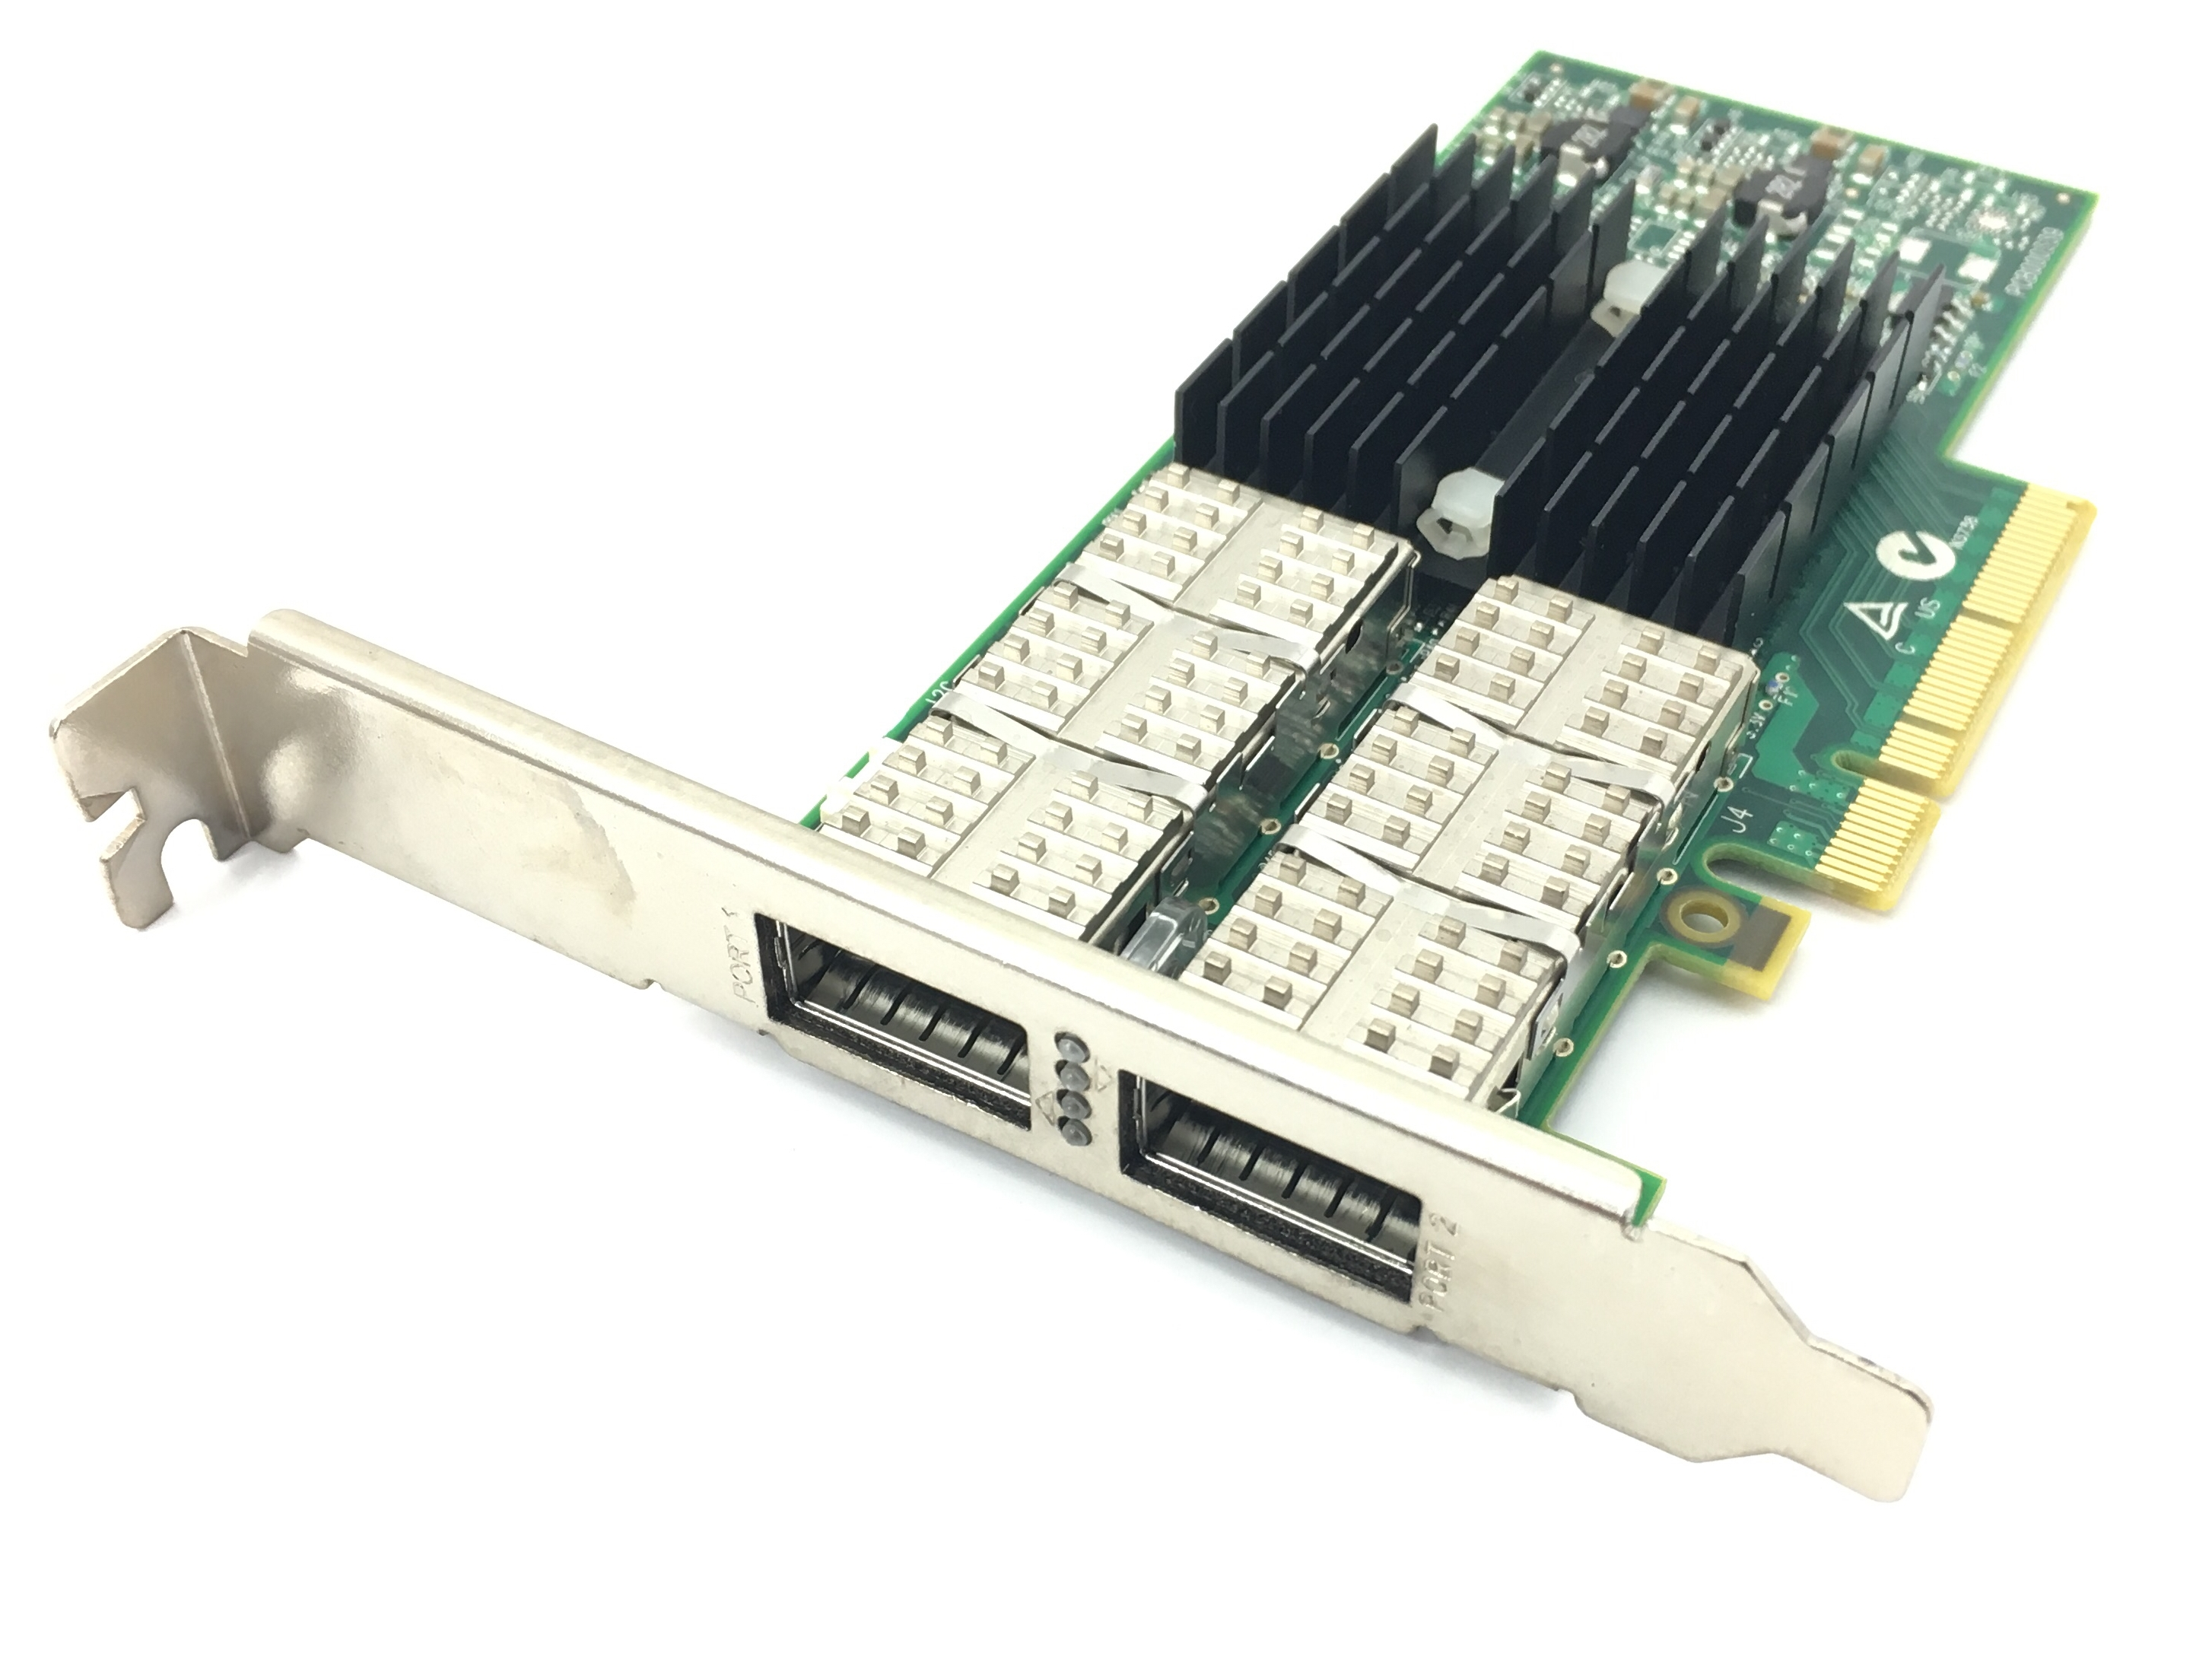 Mellanox CX354A ConnectX-3 VPI QDR IB 10GbE Dual-Port QSFP Adapter NIC (CX354A)